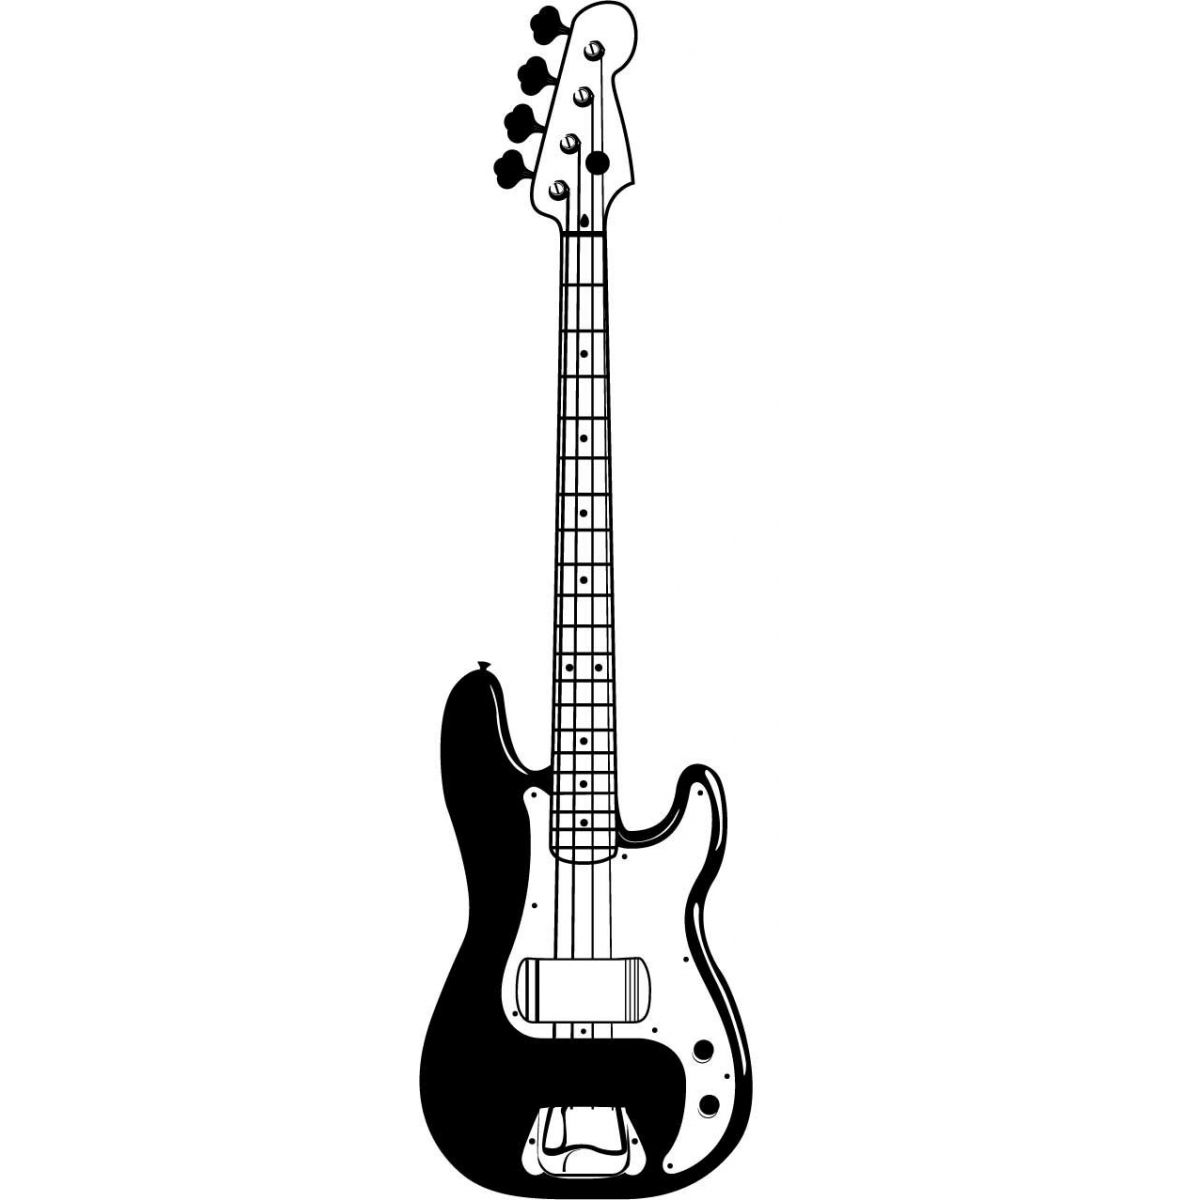 1200x1200 Guitar Black And White Picture Of An Electric Guitar Free Download